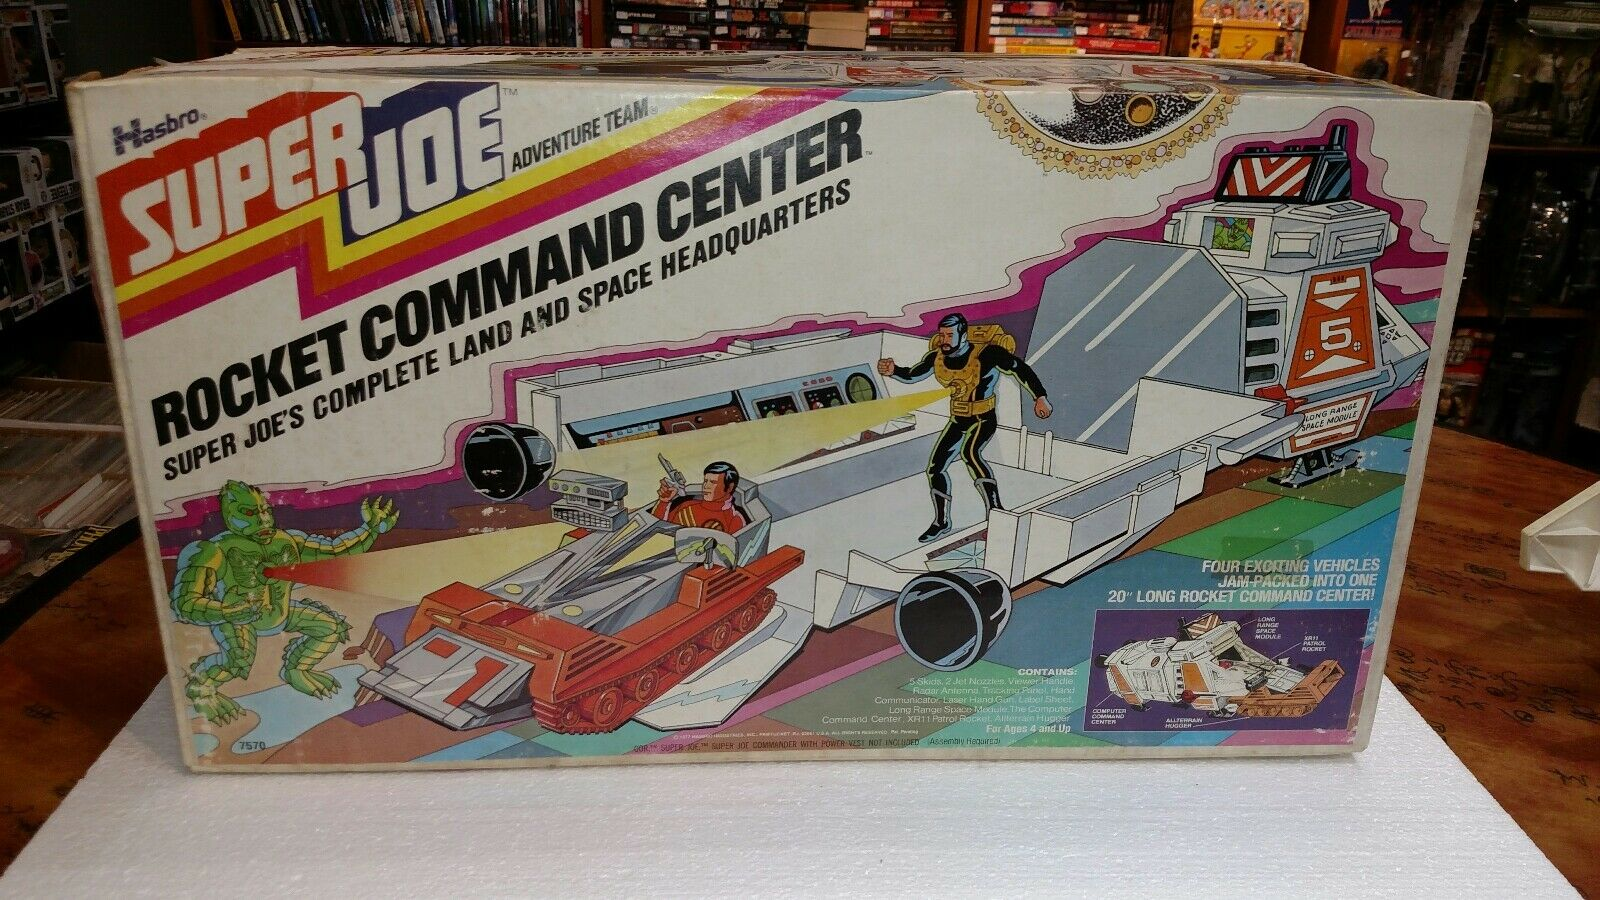 1977 HASBRO SUPER JOE ADVENTURE TEAM LAND AND SPACE HEADQUARTERS IN BOX